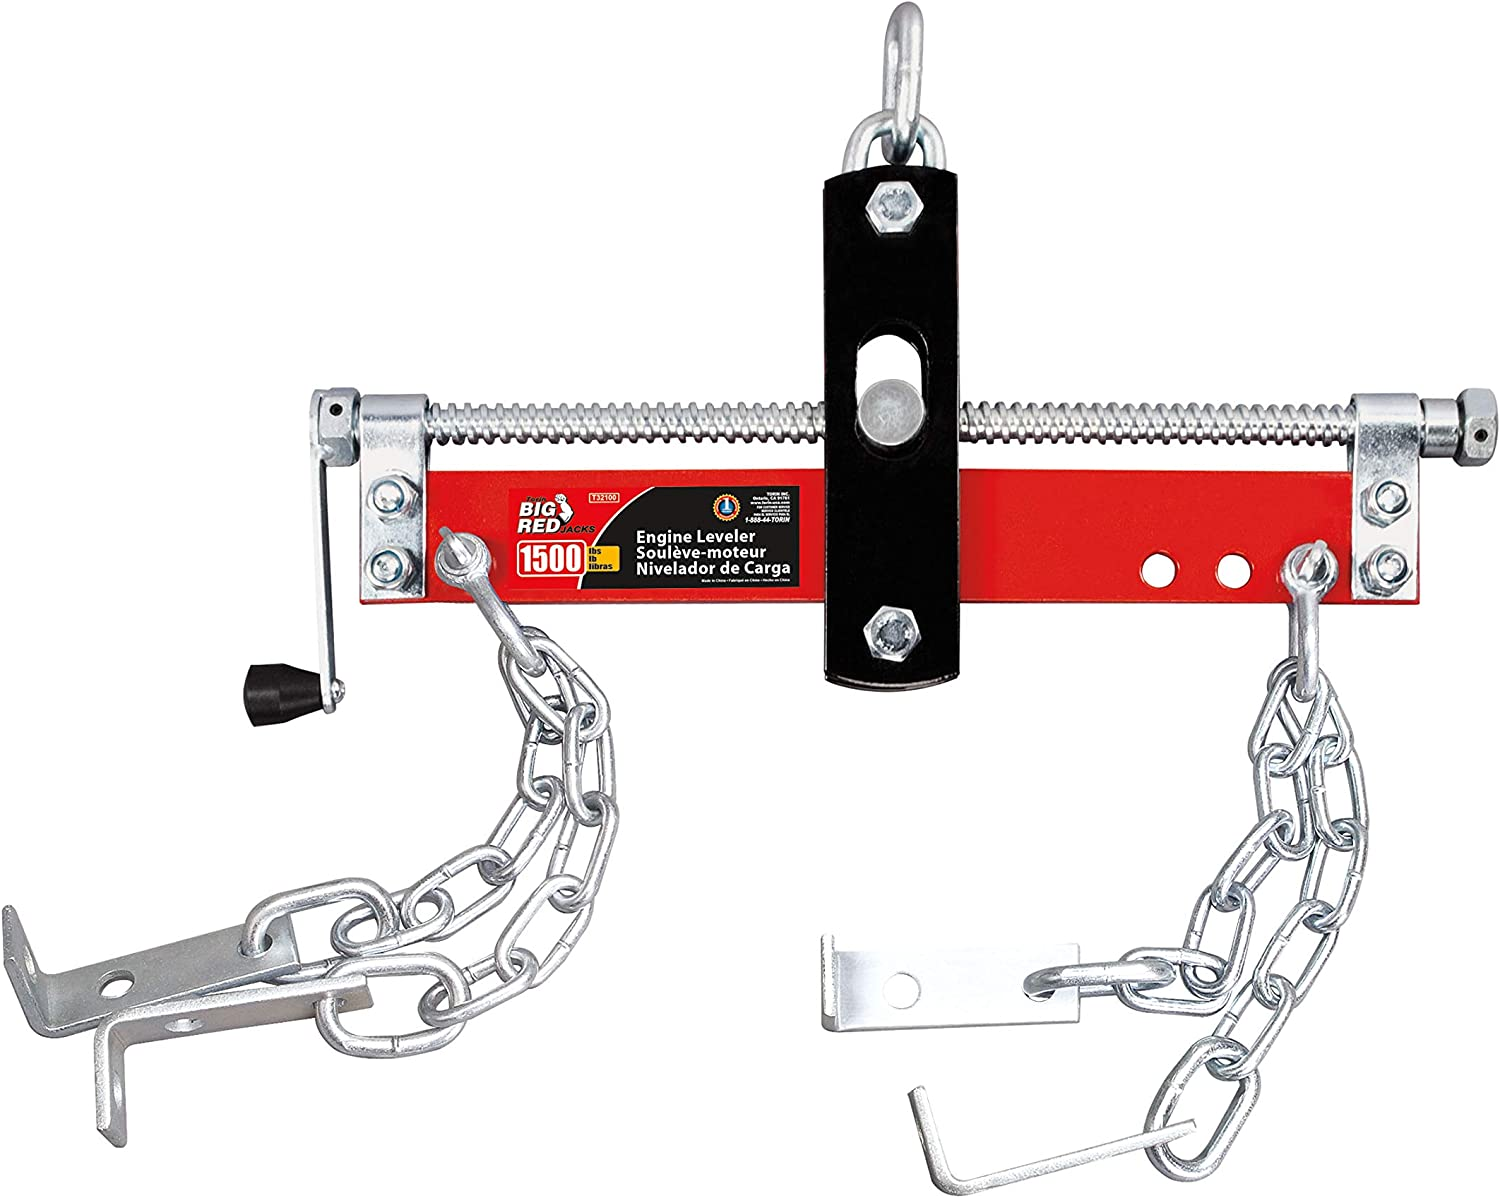 BIG RED T32100 Torin Engine Hoist Shop Crane Accessory: Steel 3 Position Engine Leveler with Adjustable Handle, 3/4 Ton (1,500 lb) Capacity, Red: Automotive